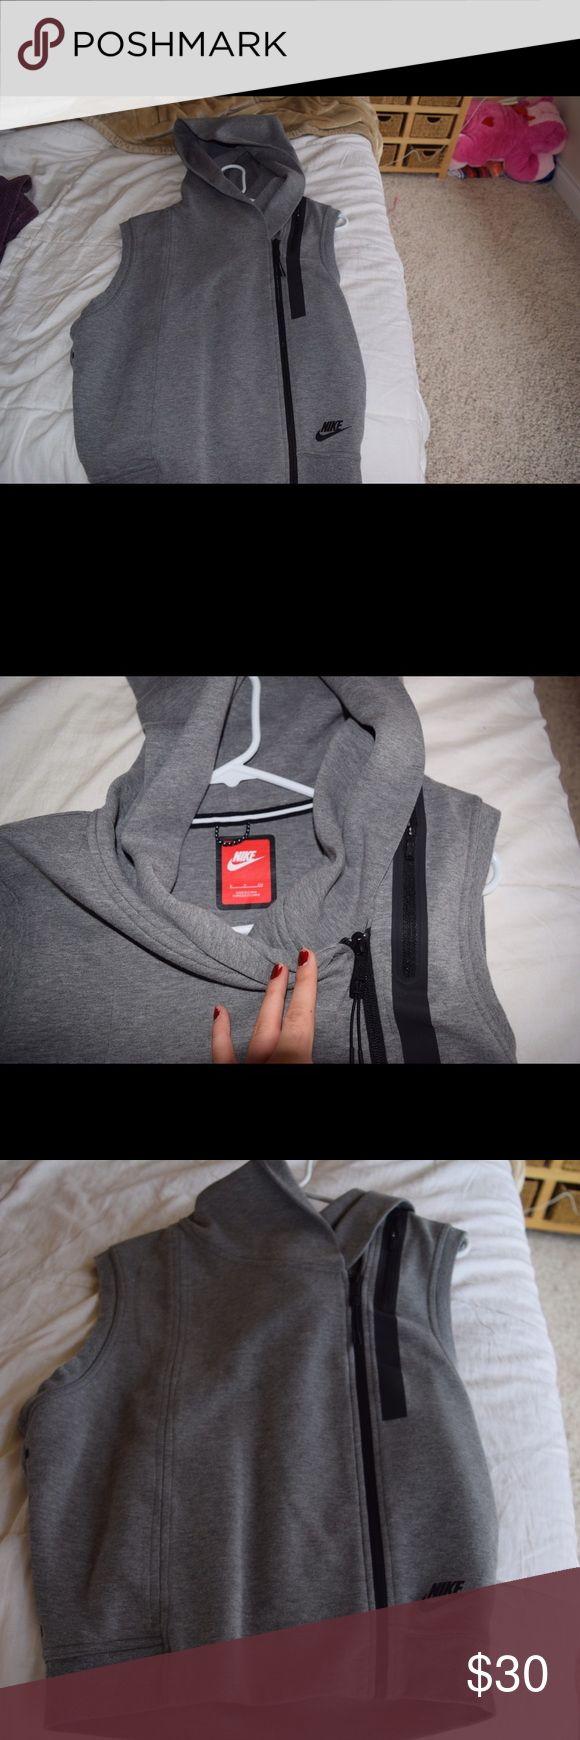 Nike vest Grey Nike vest. Super comfy and cute to workout in or regularly wear. Nike Jackets & Coats Vests